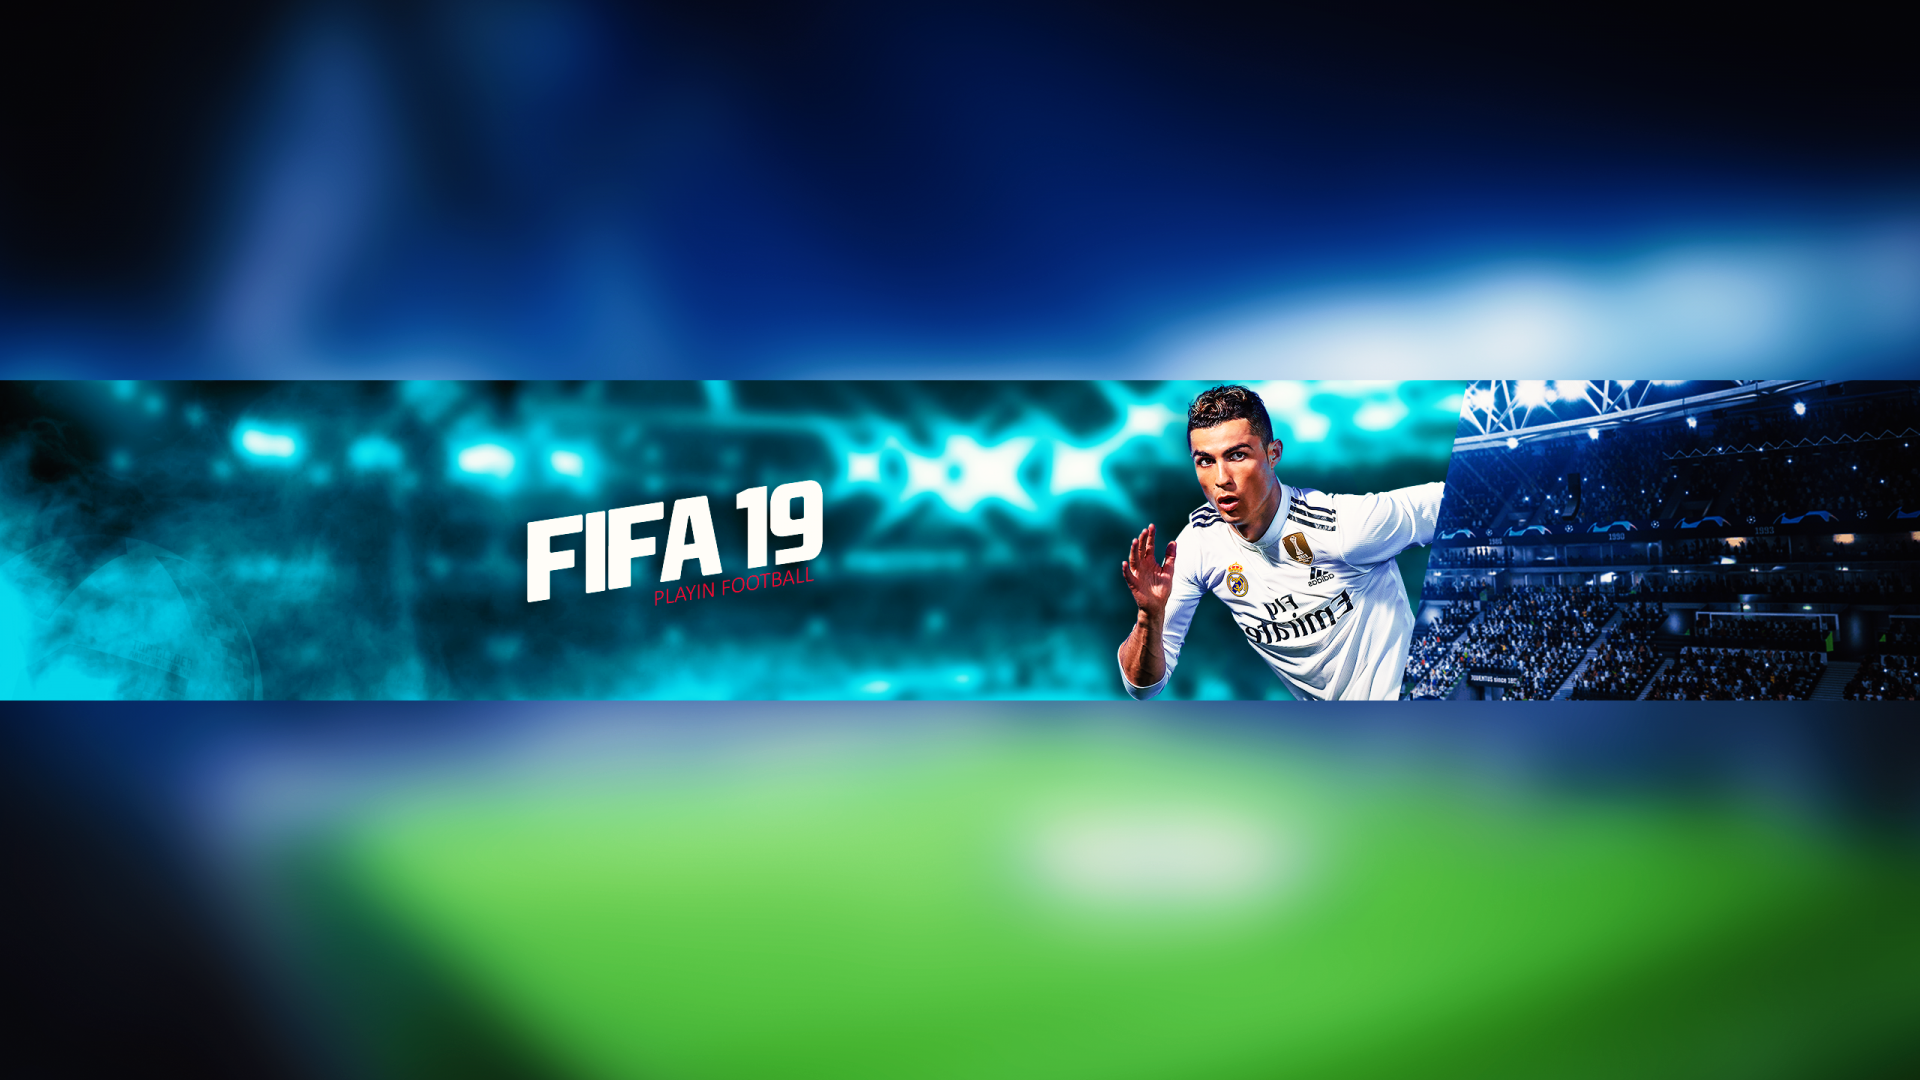 Free Fifa 19 Youtube Banner Template 5ergiveaways